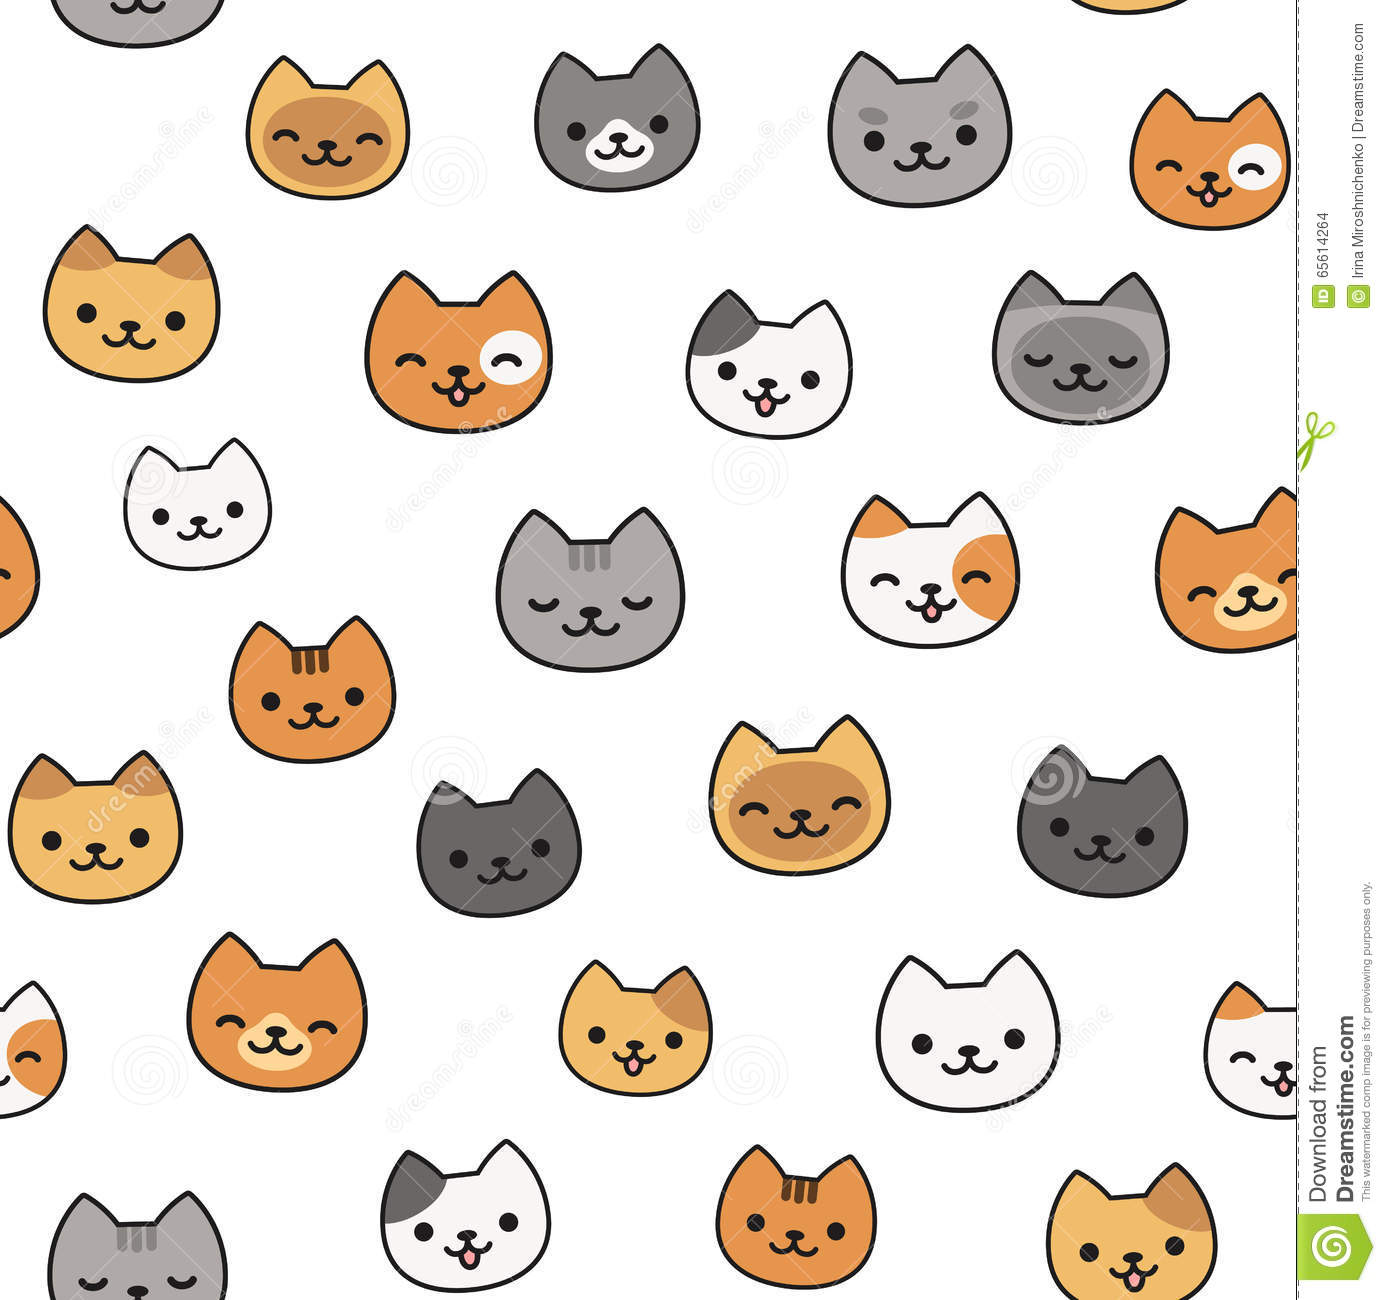 Cute Cat Pattern Stock Vector Illustration Of Repeating 65614264